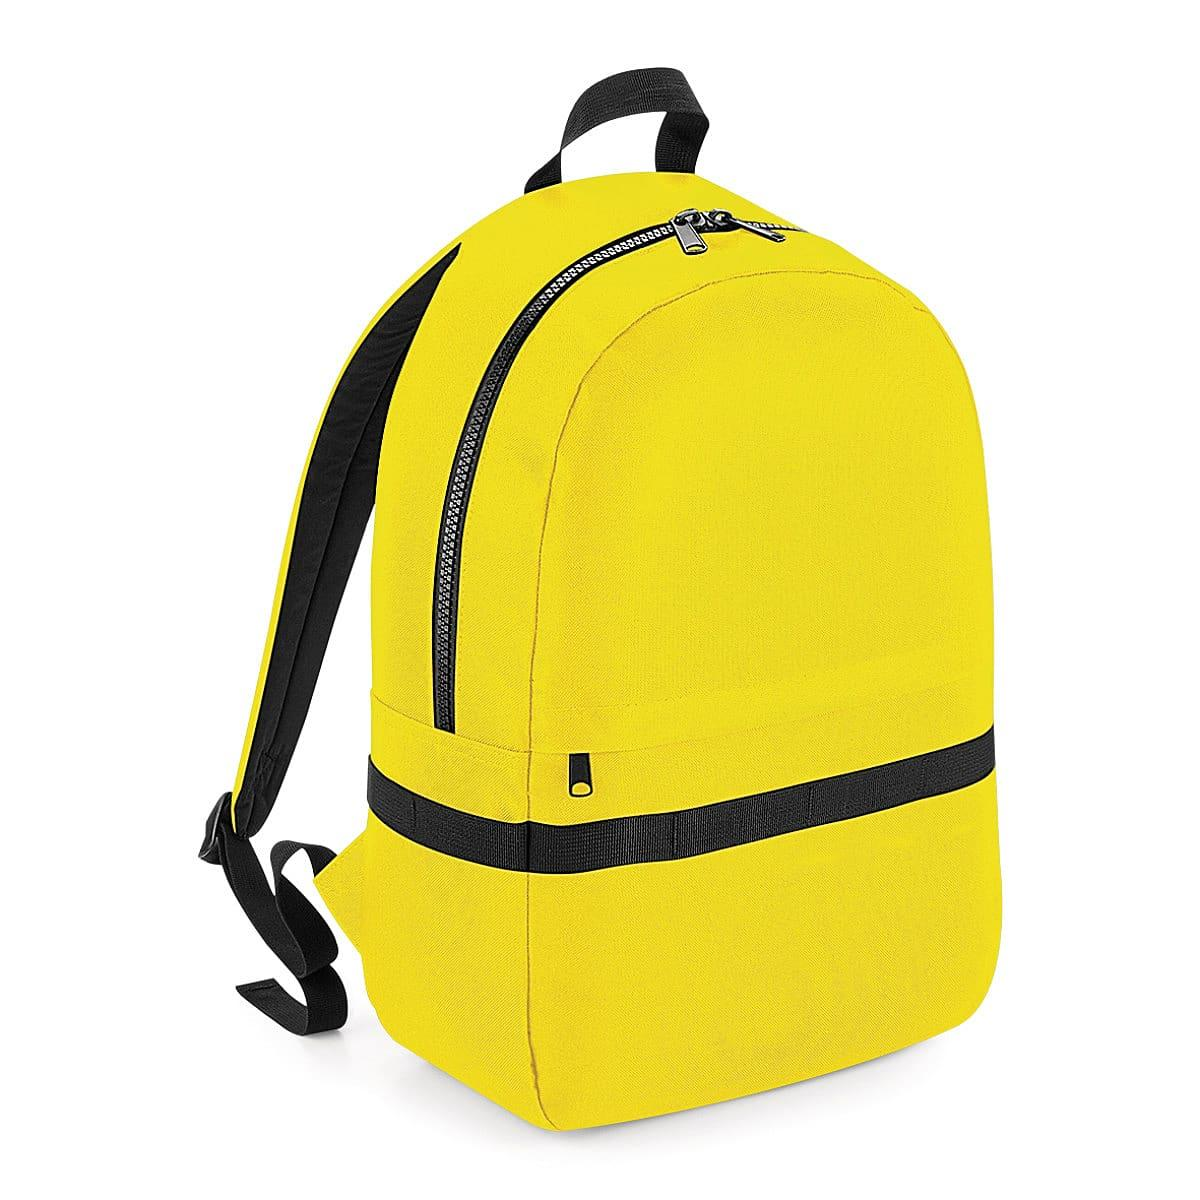 Bagbase Modulr 20 Litre Backpack in Yellow (Product Code: BG240)